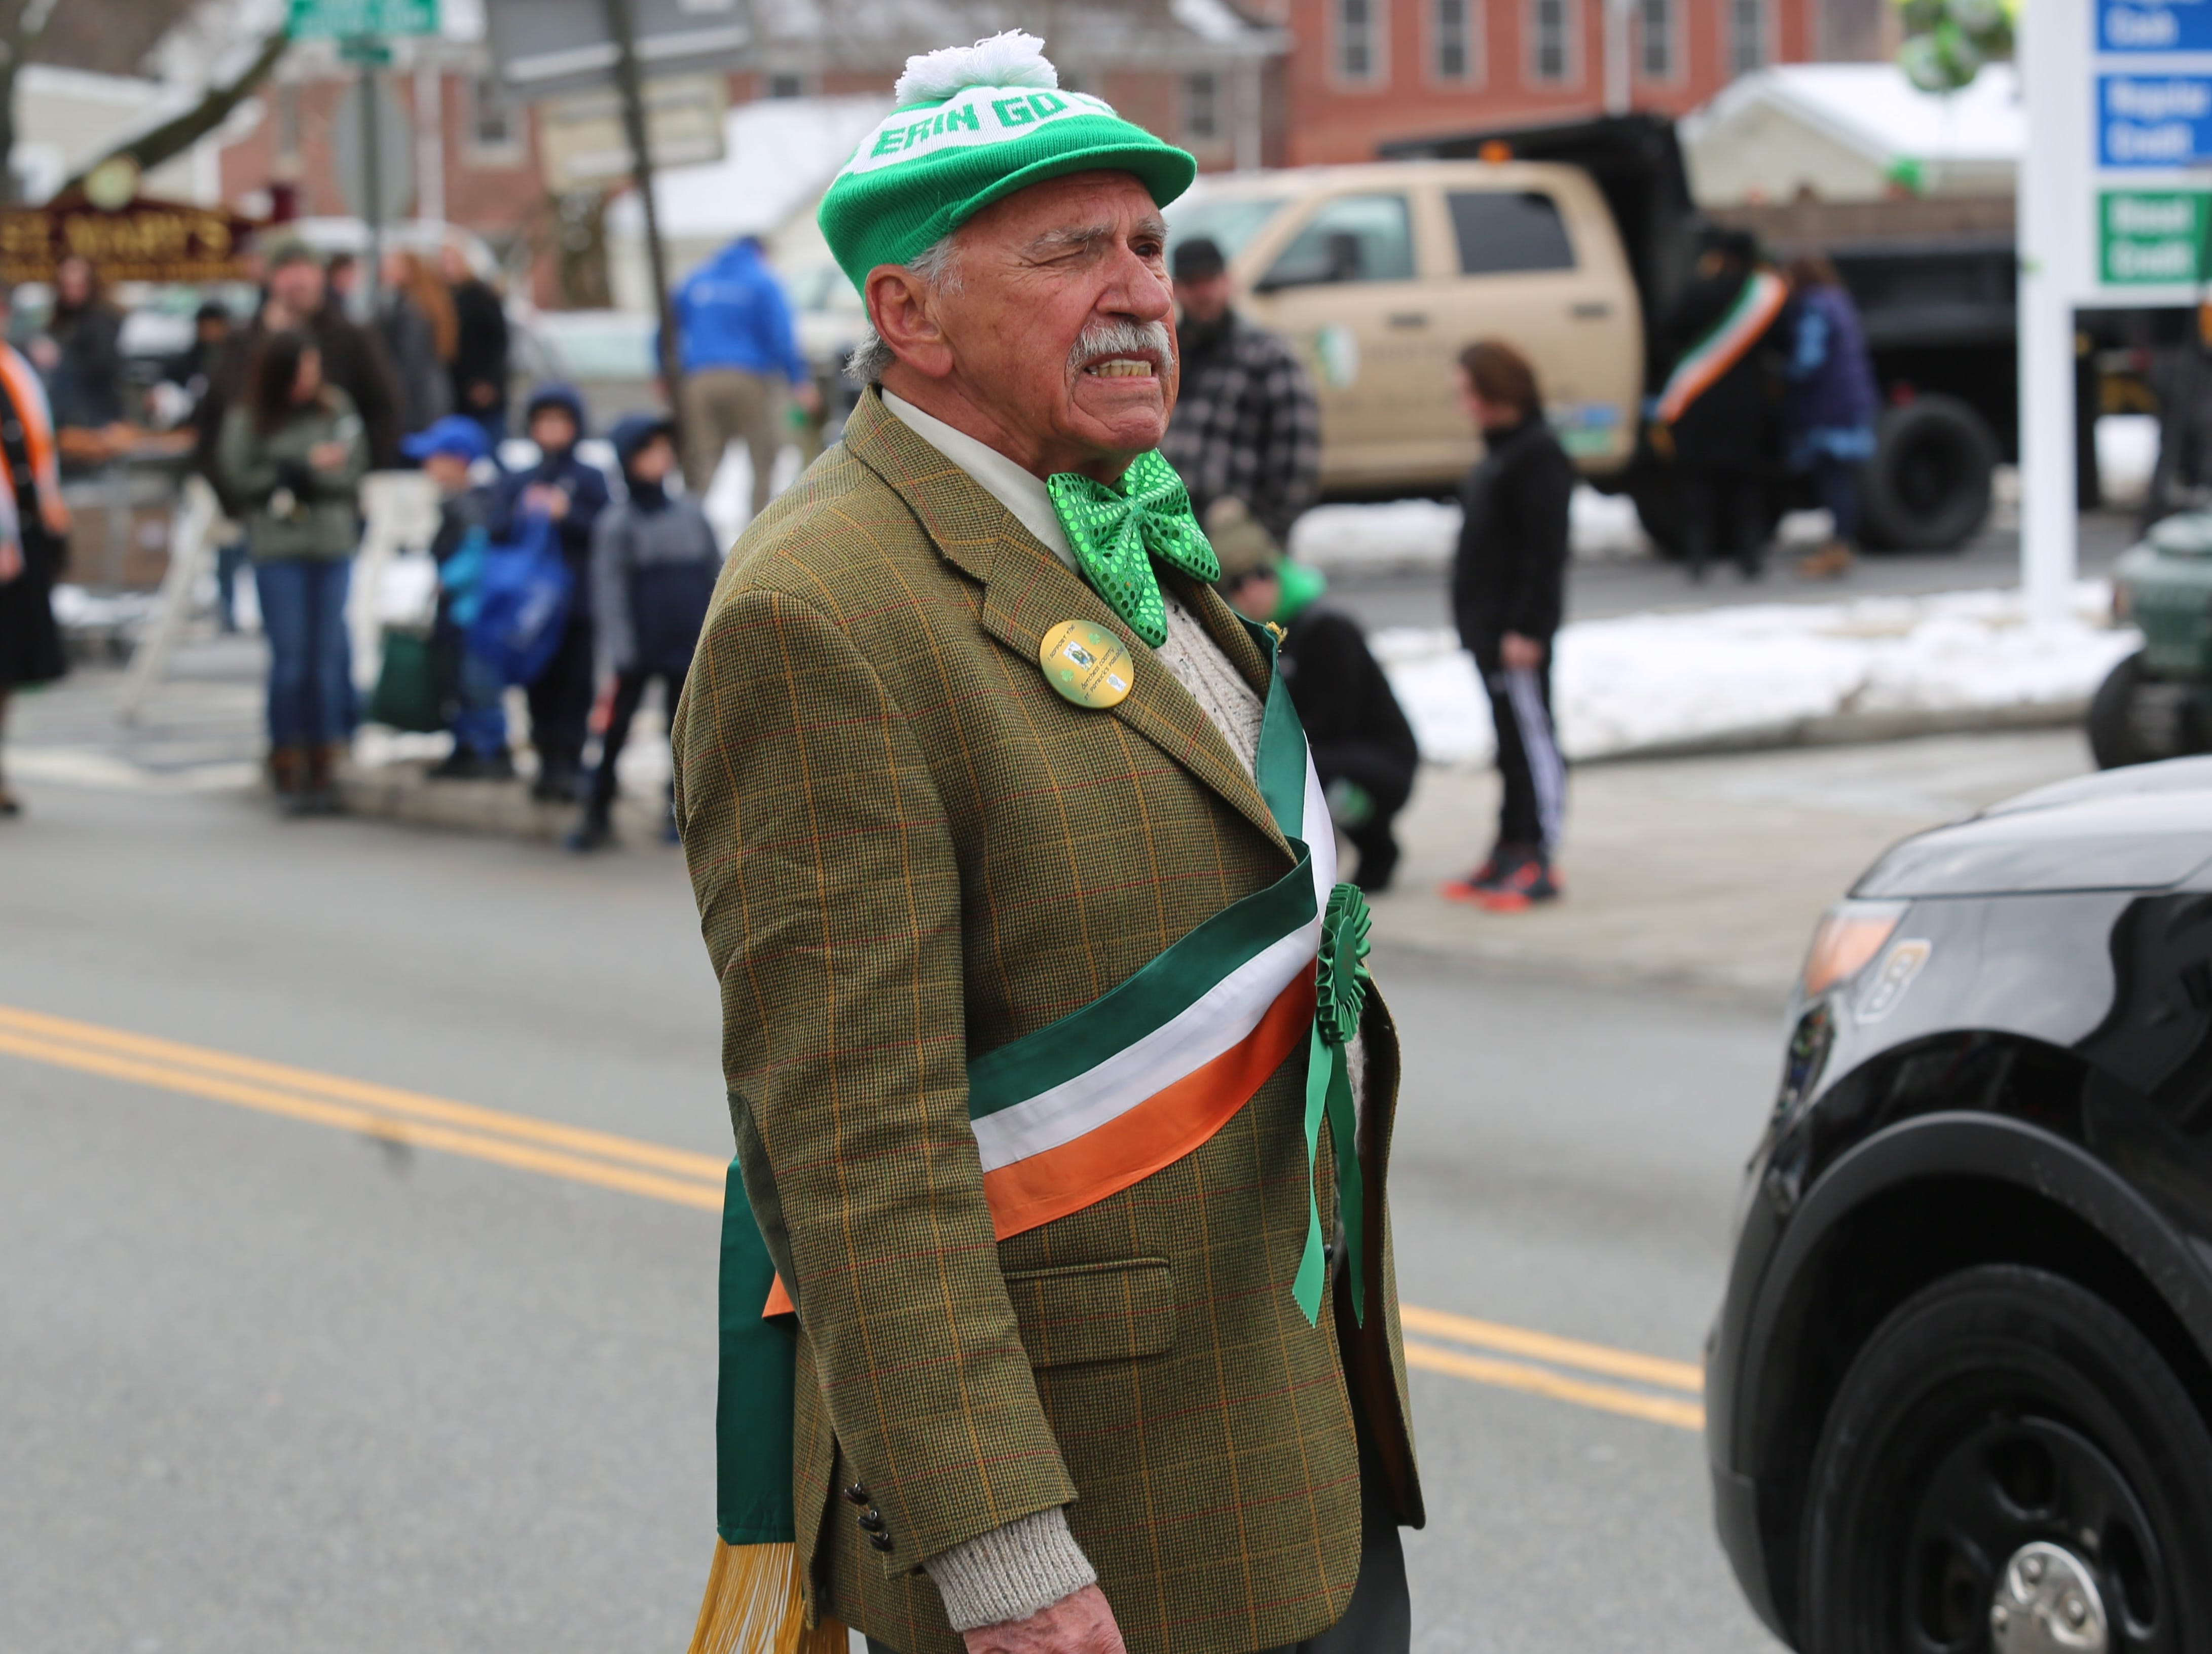 John Beale, a member of the Dutchess County St. Patrick's Day Parade Committee, stops to look at the parade as he marches in the annual celebration held on Saturday.